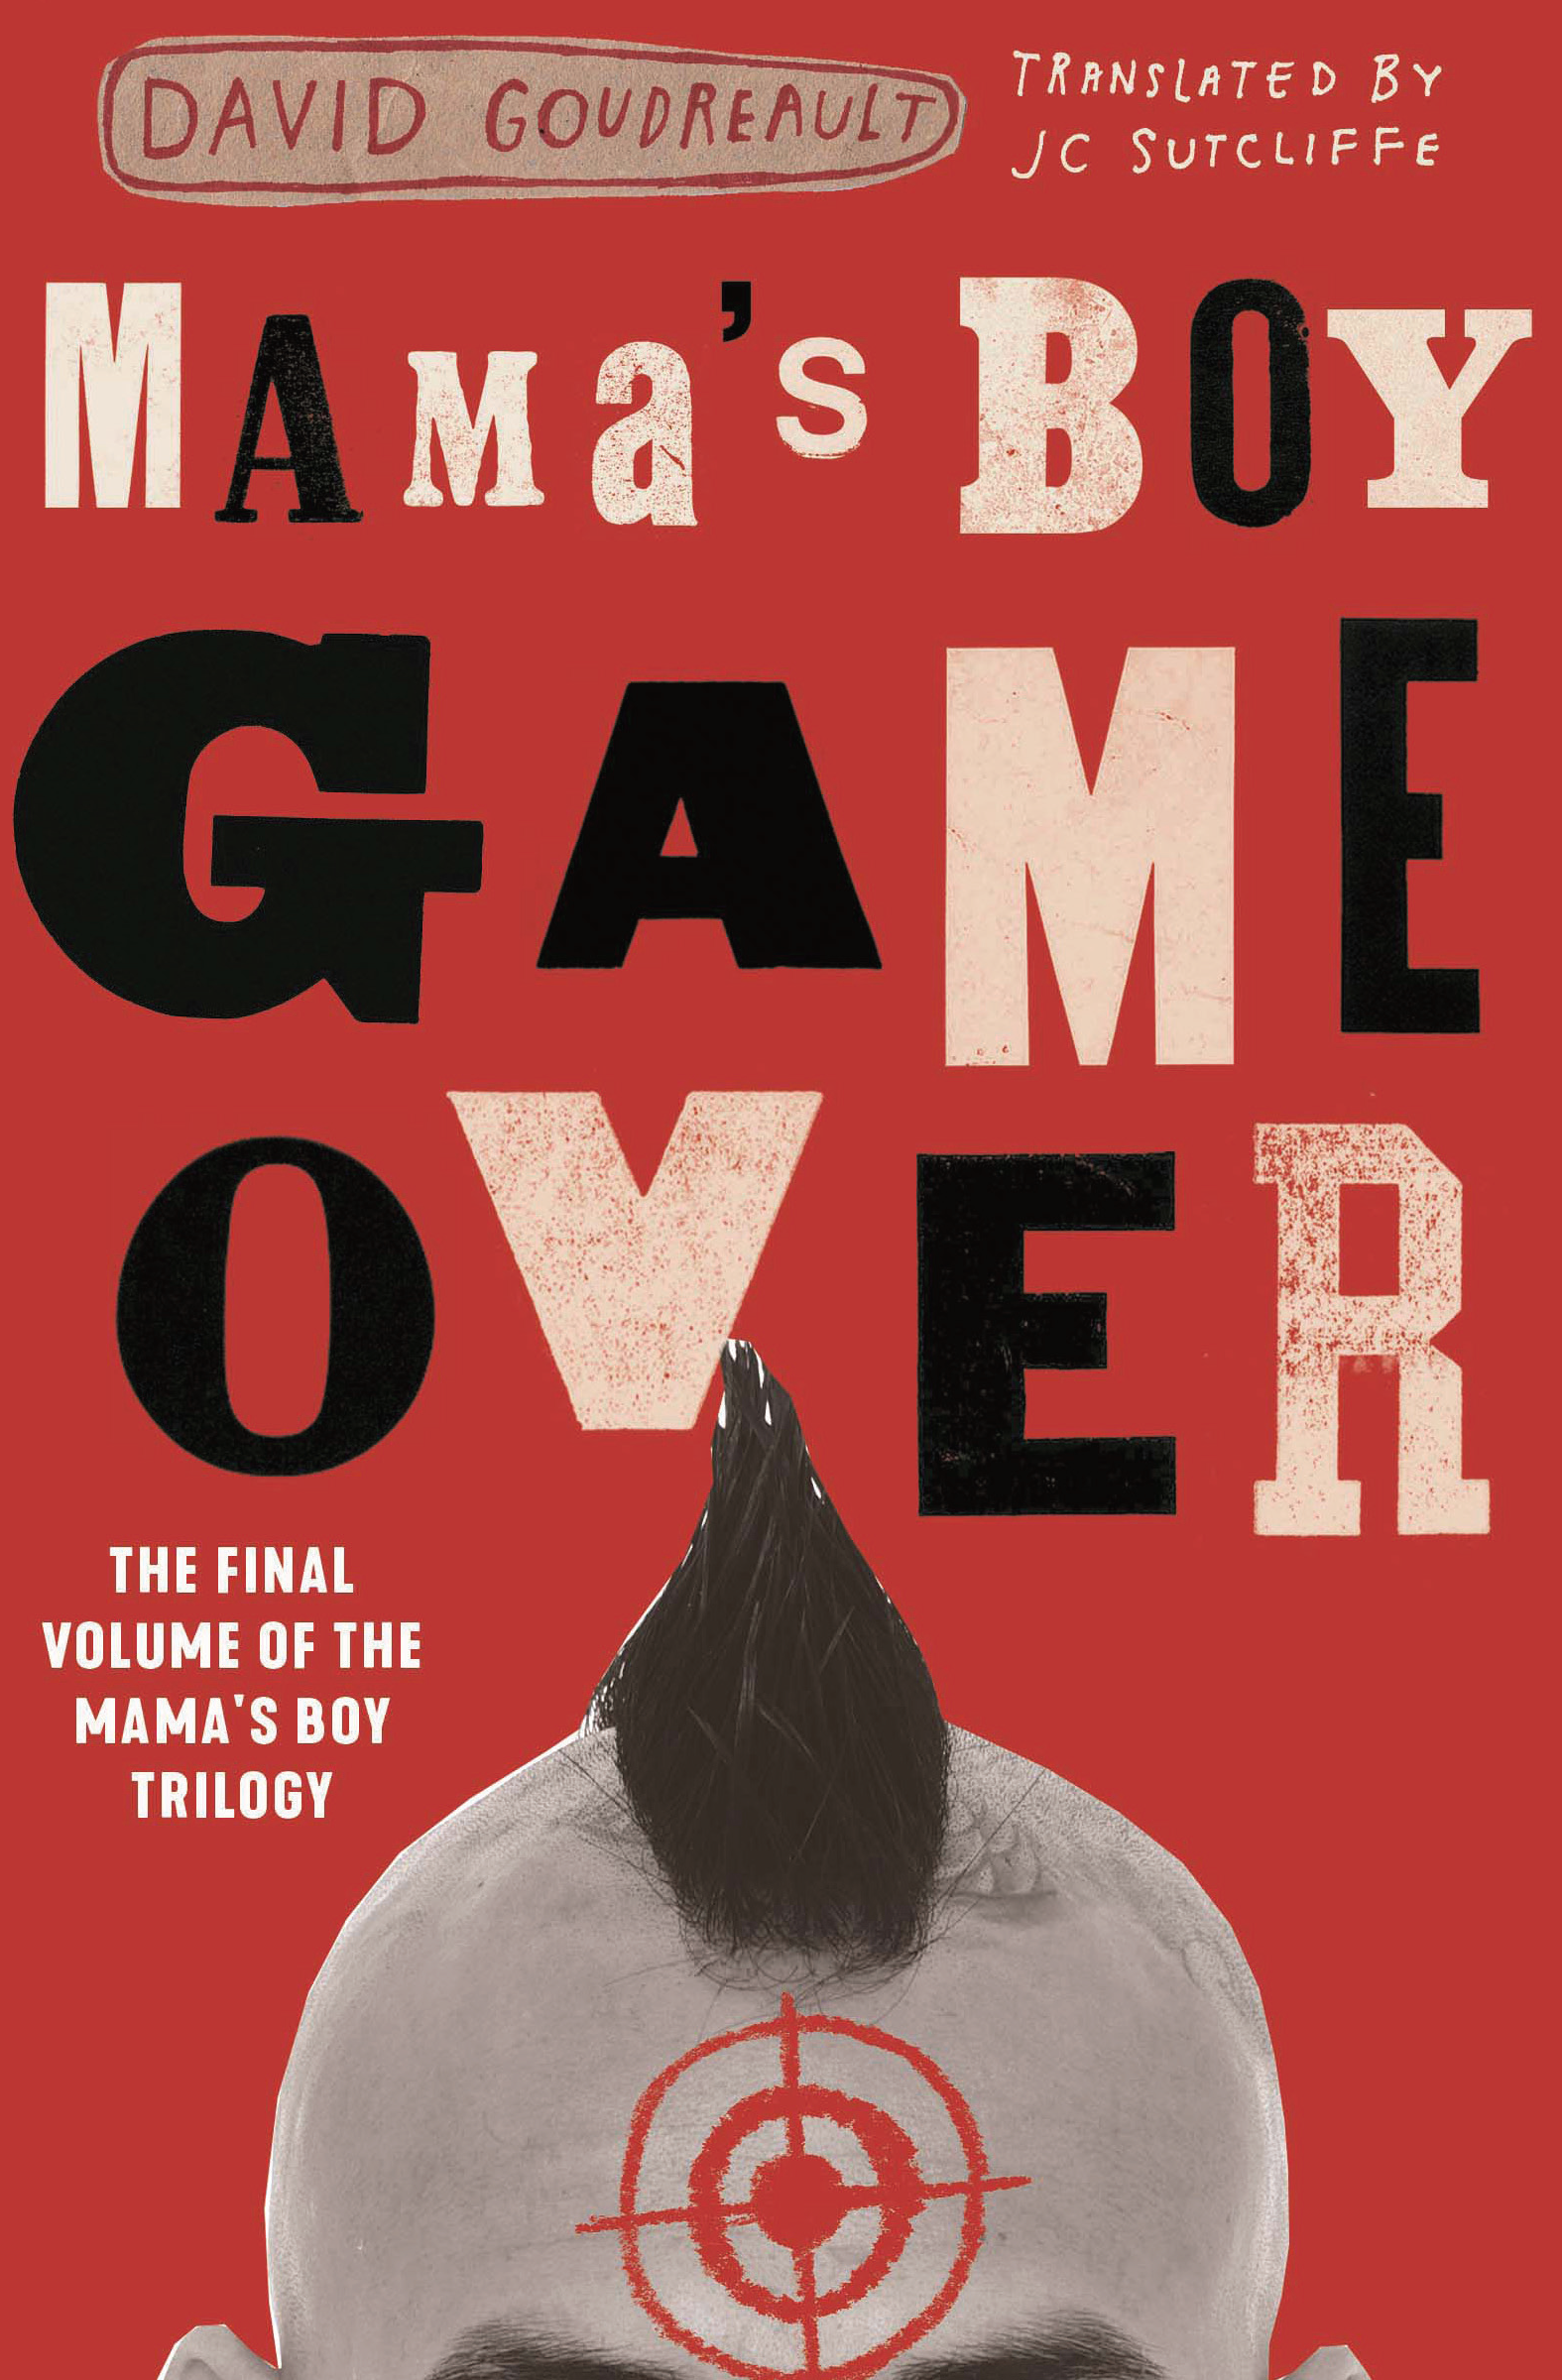 Mama's Boy: Game Over by David Goudreault, Translated by JC Sutcliffe